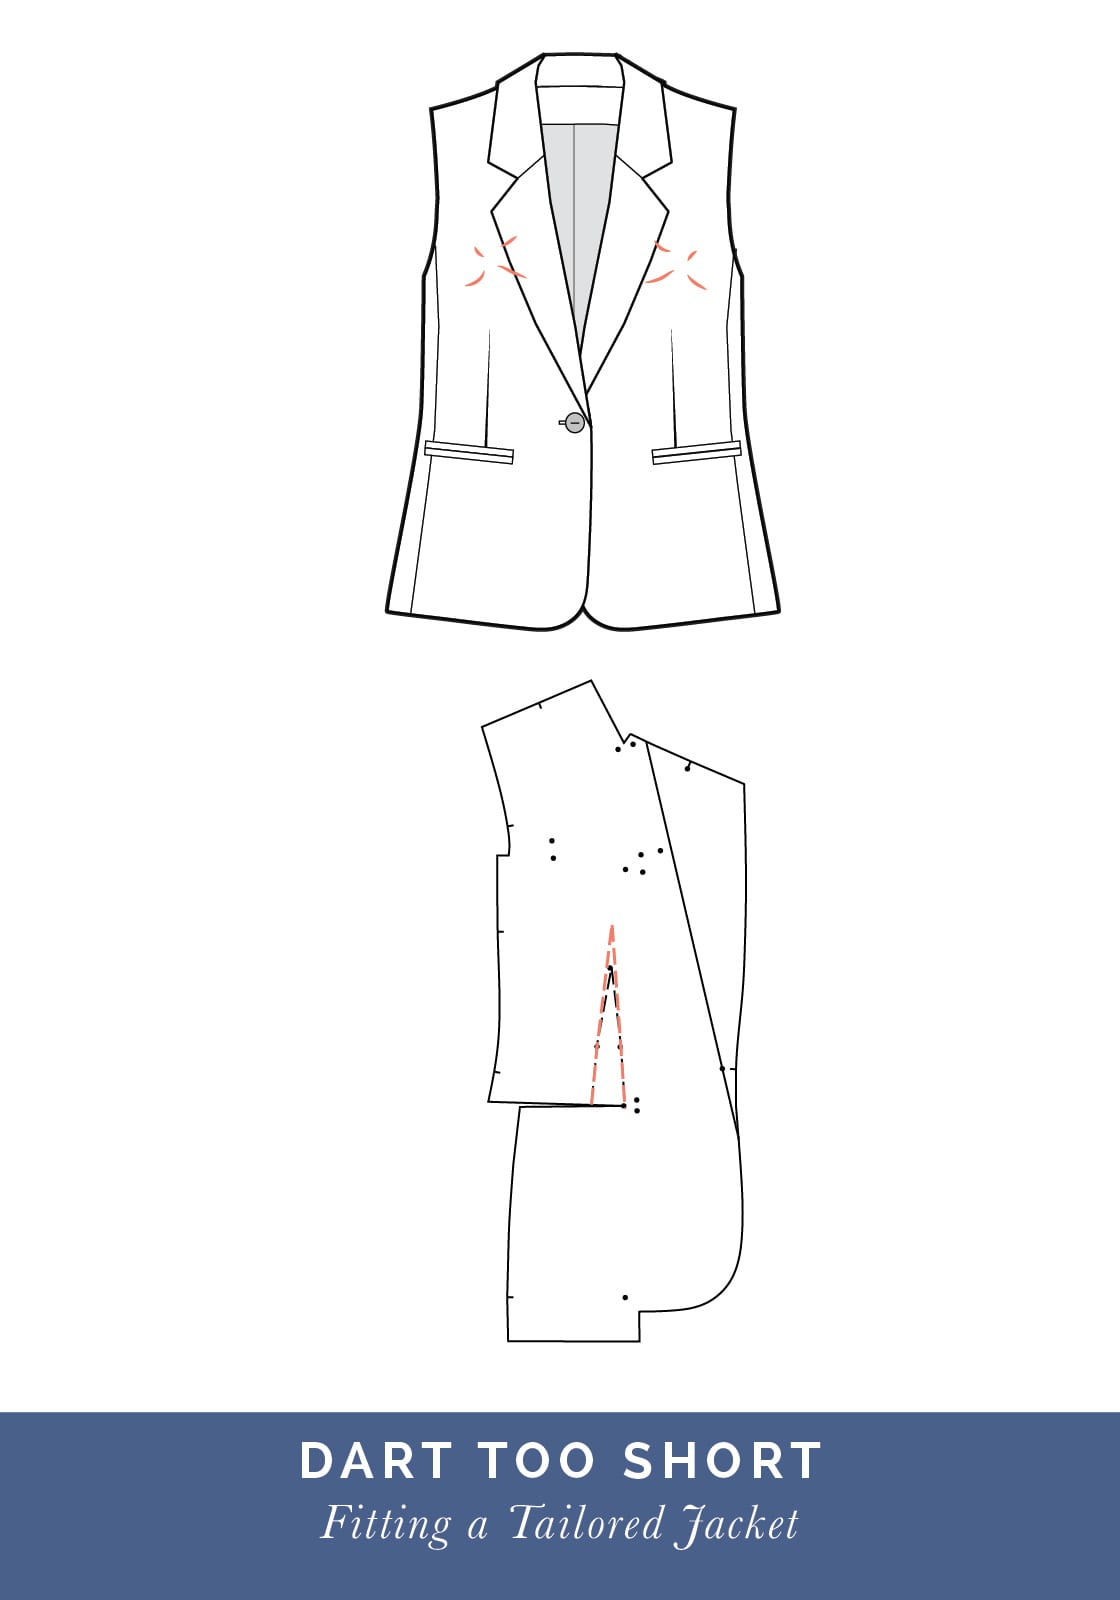 Dart too short // How to fit a Tailored jacket or Blazer // Fit adjustment issues and fixes